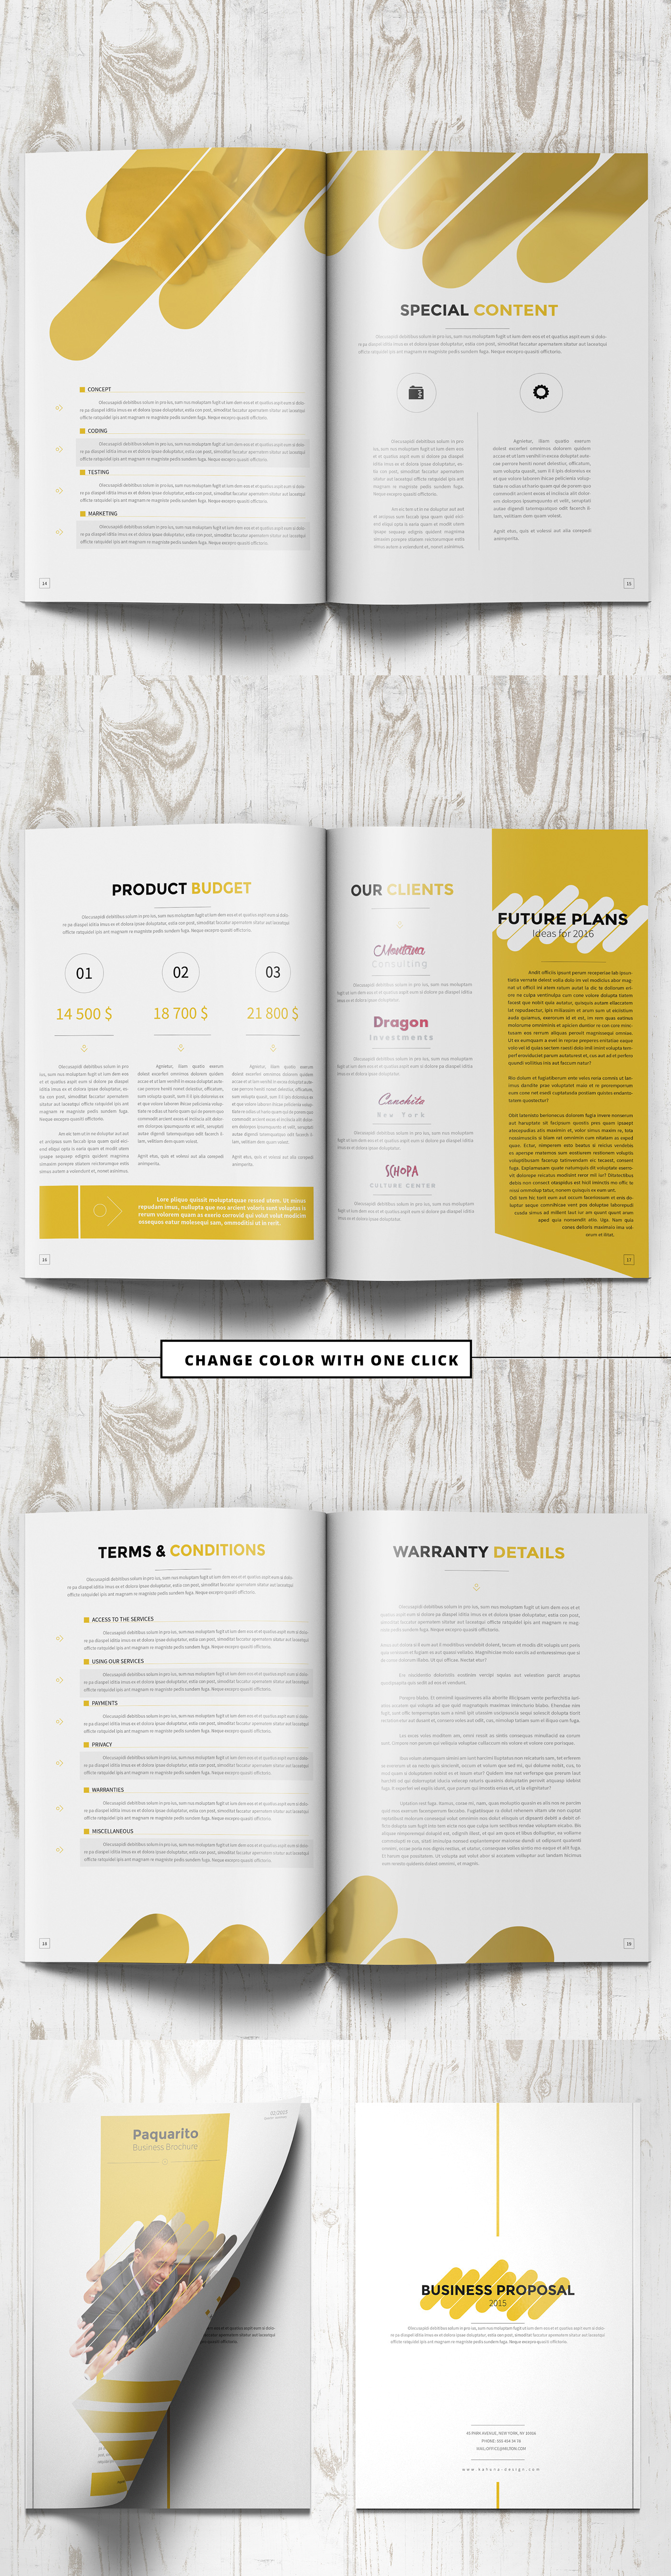 Business proposal catalog brochure template 2 sizes a4 and us business proposal catalog brochure template 2 sizes a4 and us letter adobe indesign projects 4 indesign files cs6 cs4 you can create your own accmission Gallery